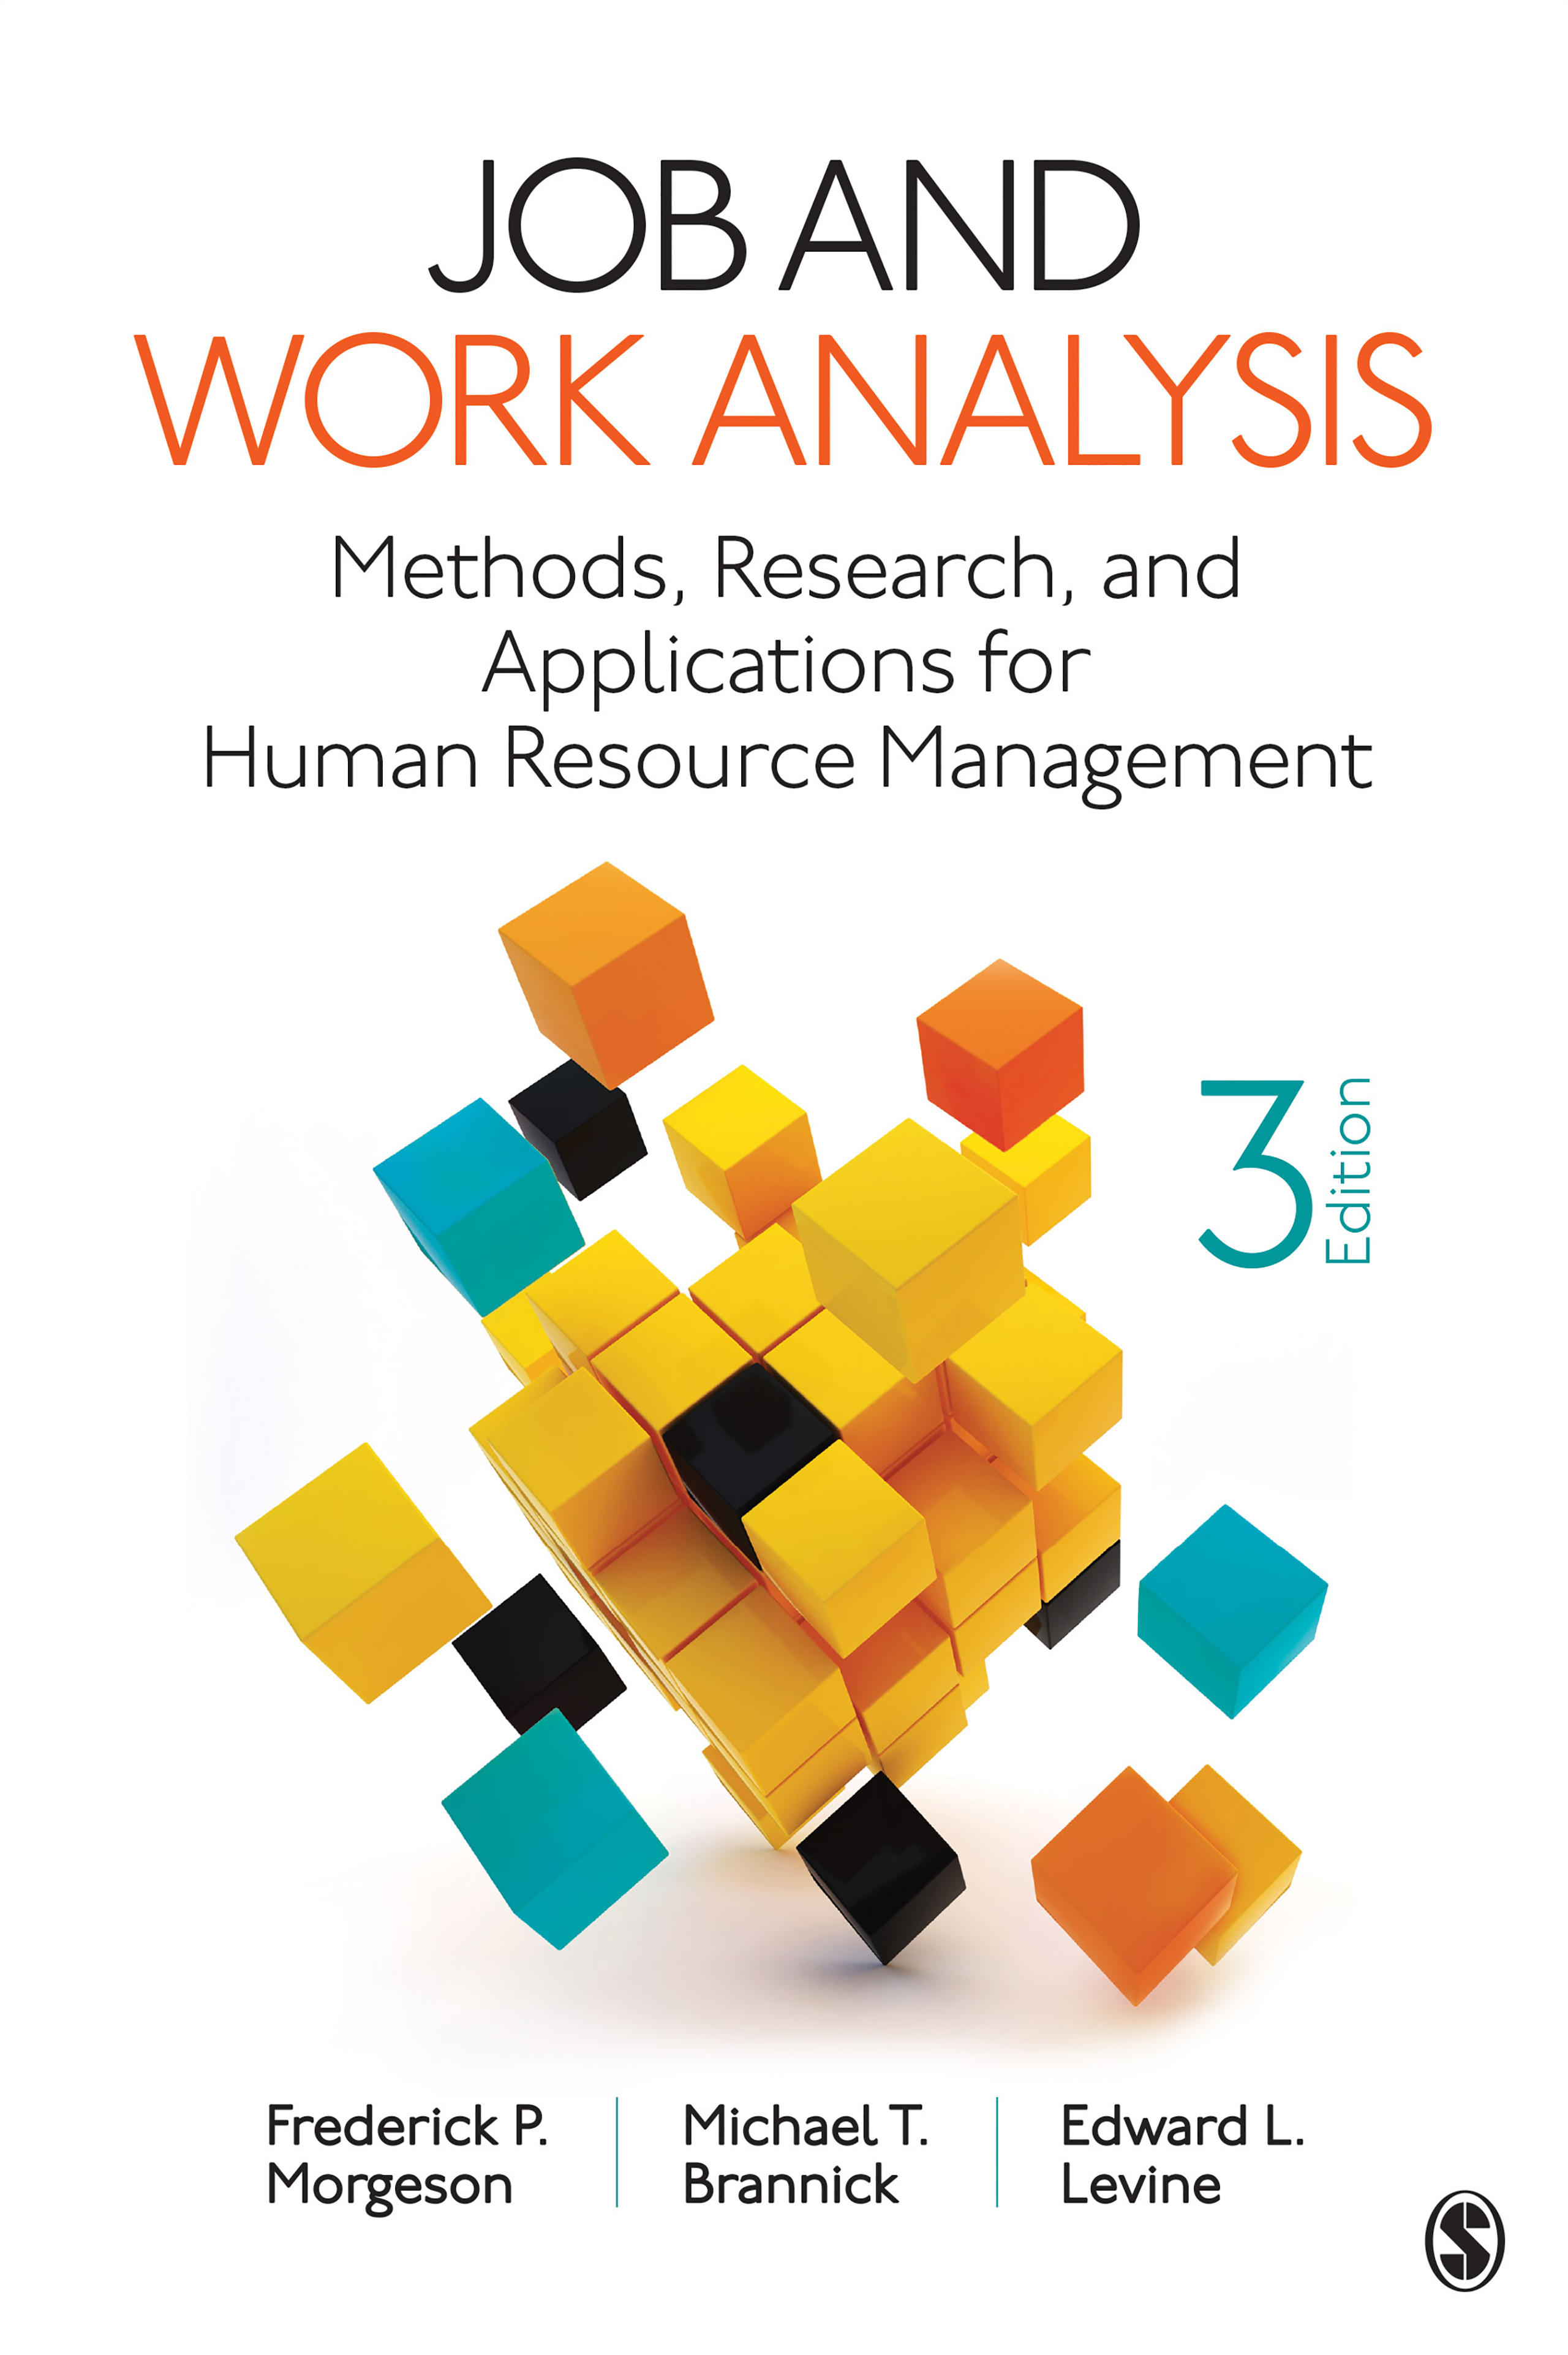 Download Ebook Job and Work Analysis (3rd ed.) by Frederick P. Morgeson Pdf